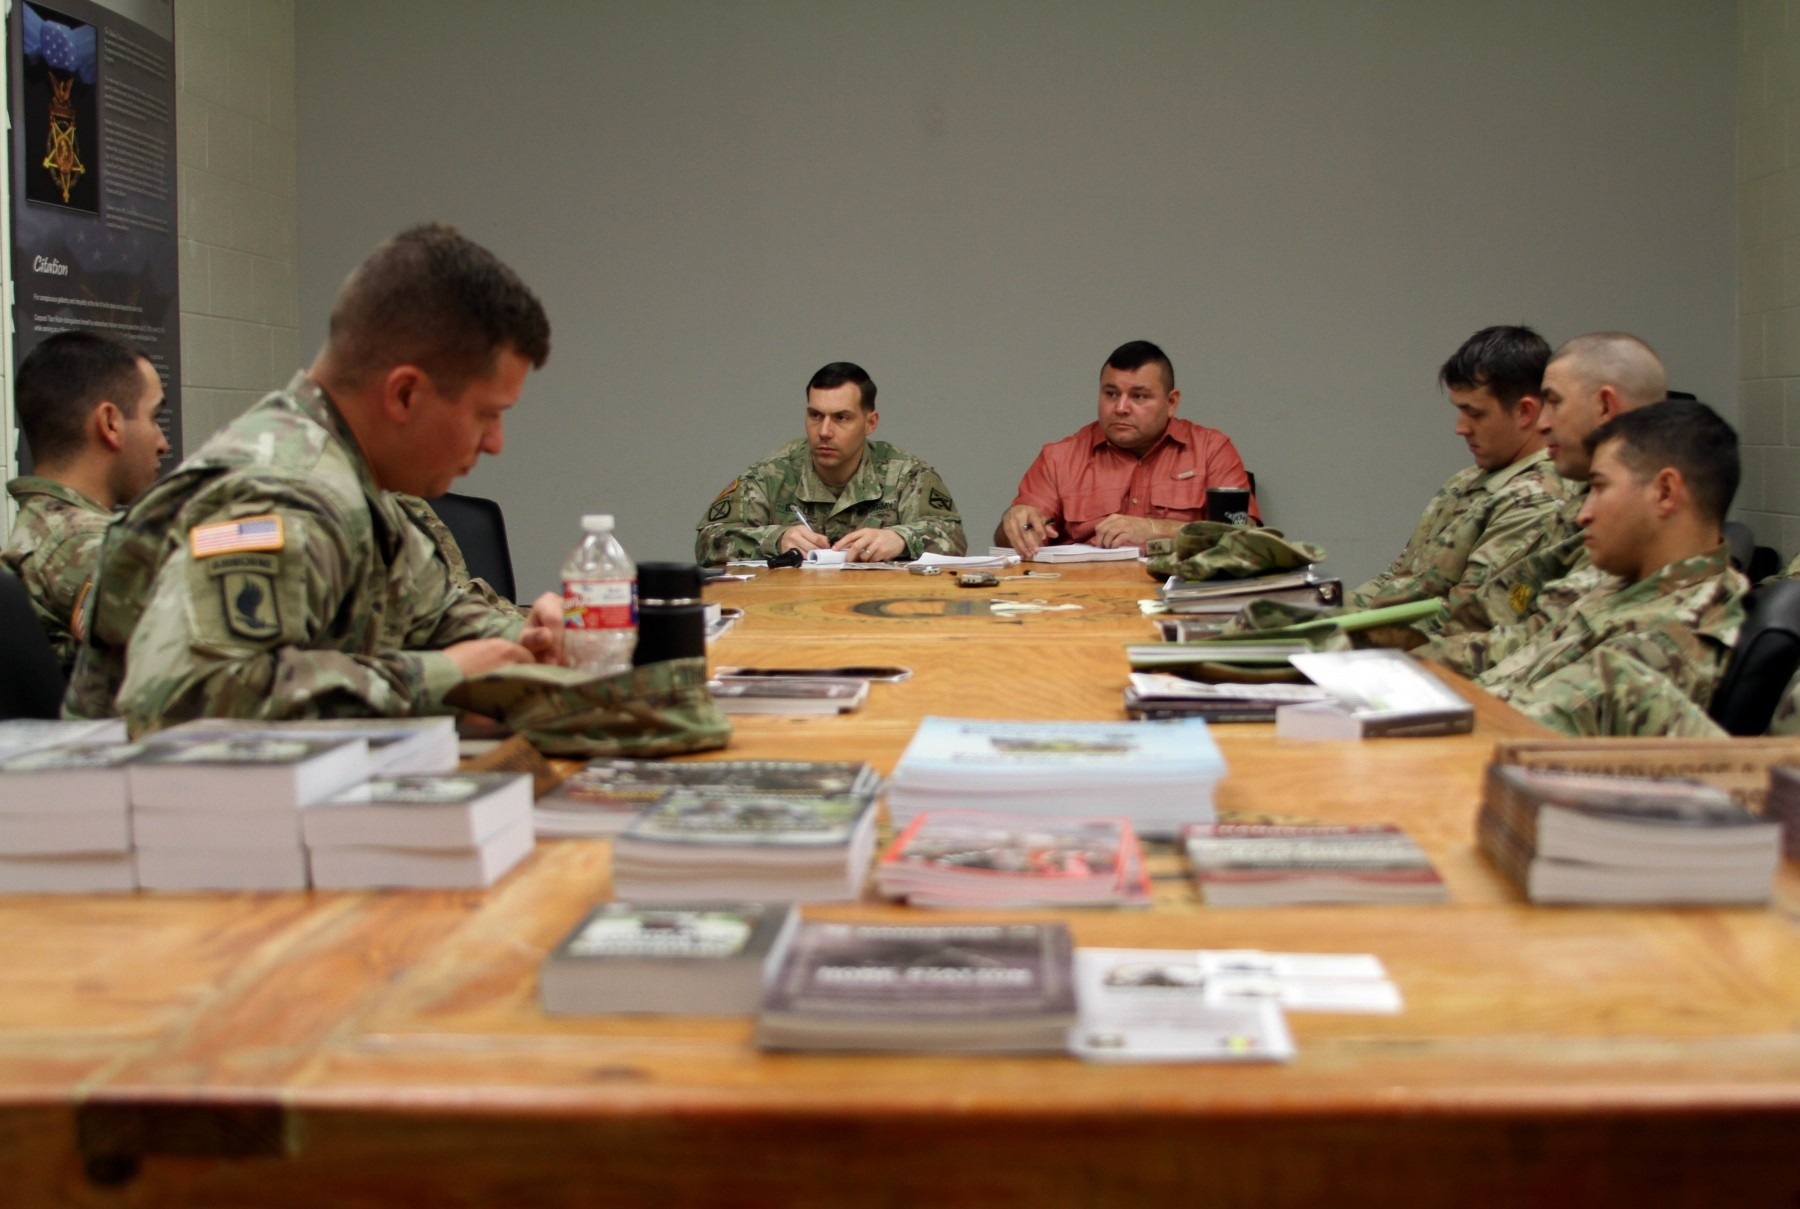 Umbrella Week Allows Soldiers to Share Lessons Learned | Article